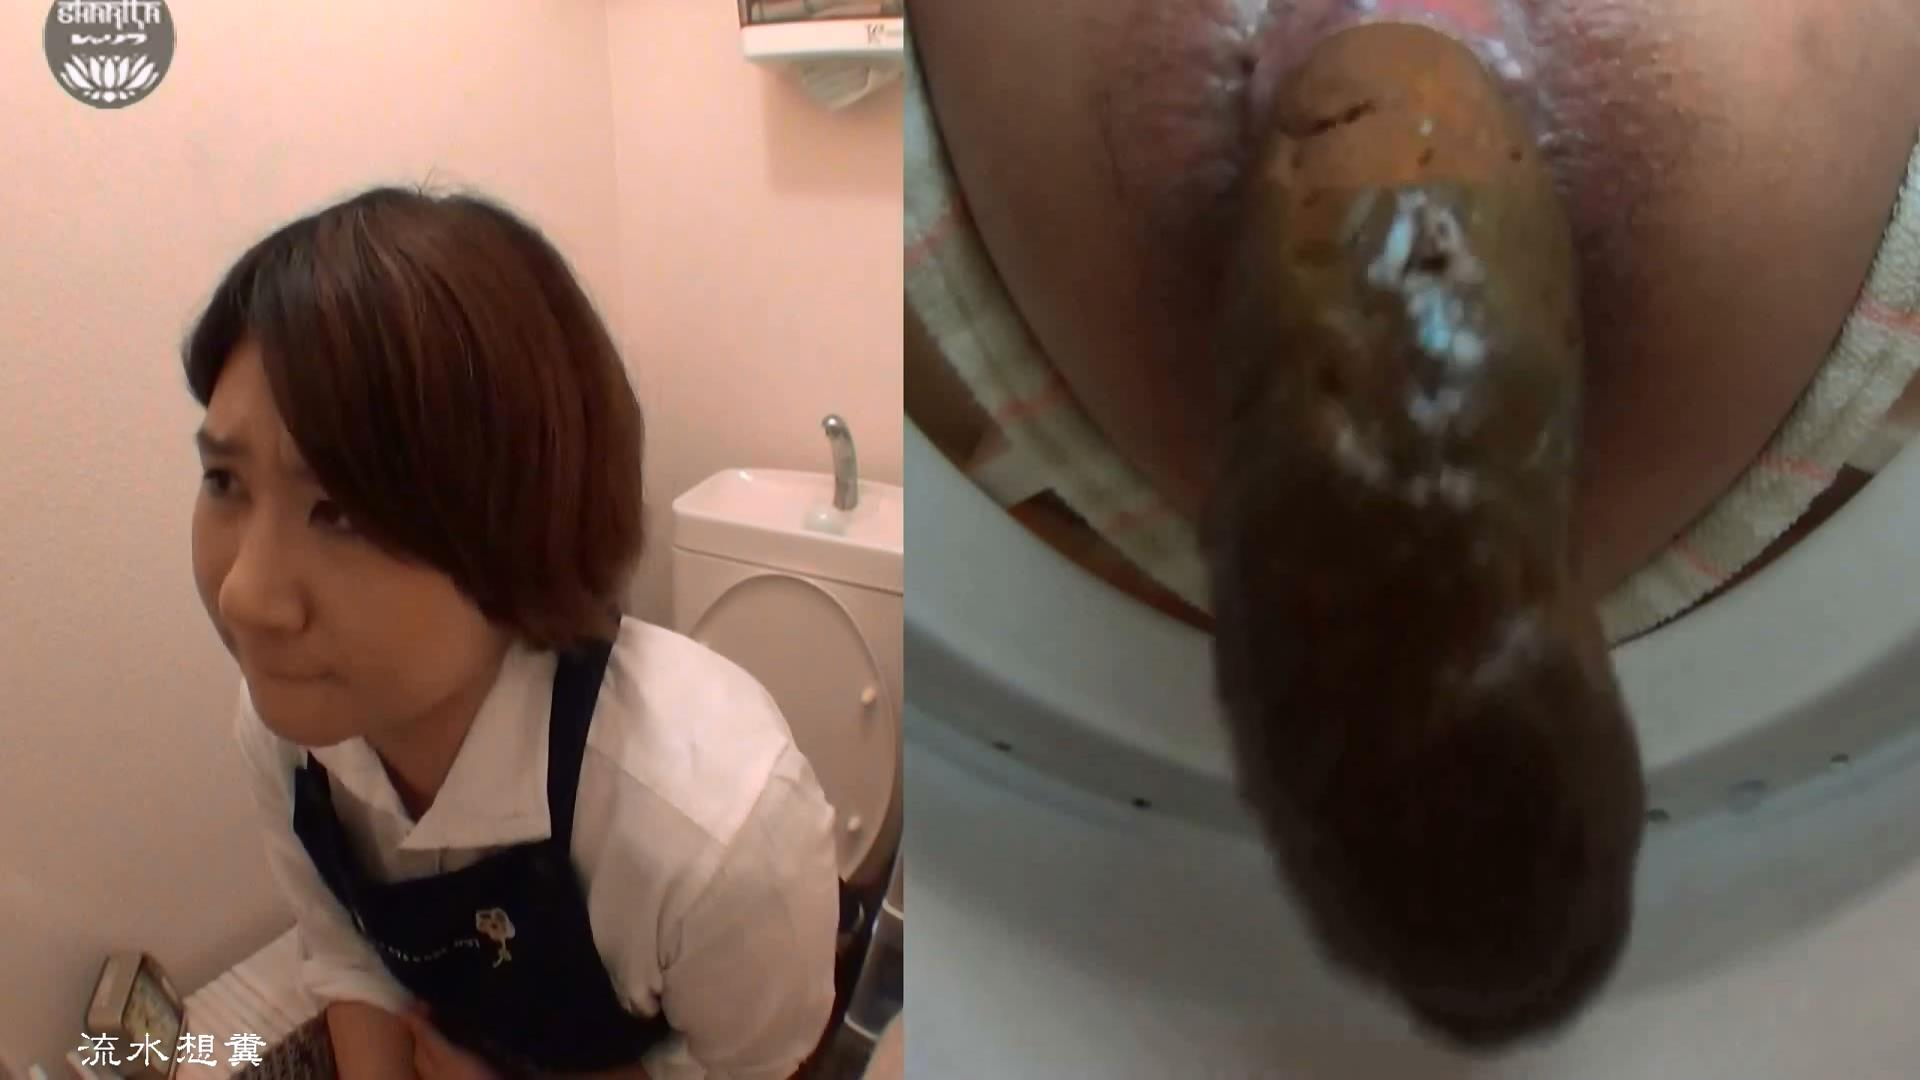 from Royal nude asian girls pooping